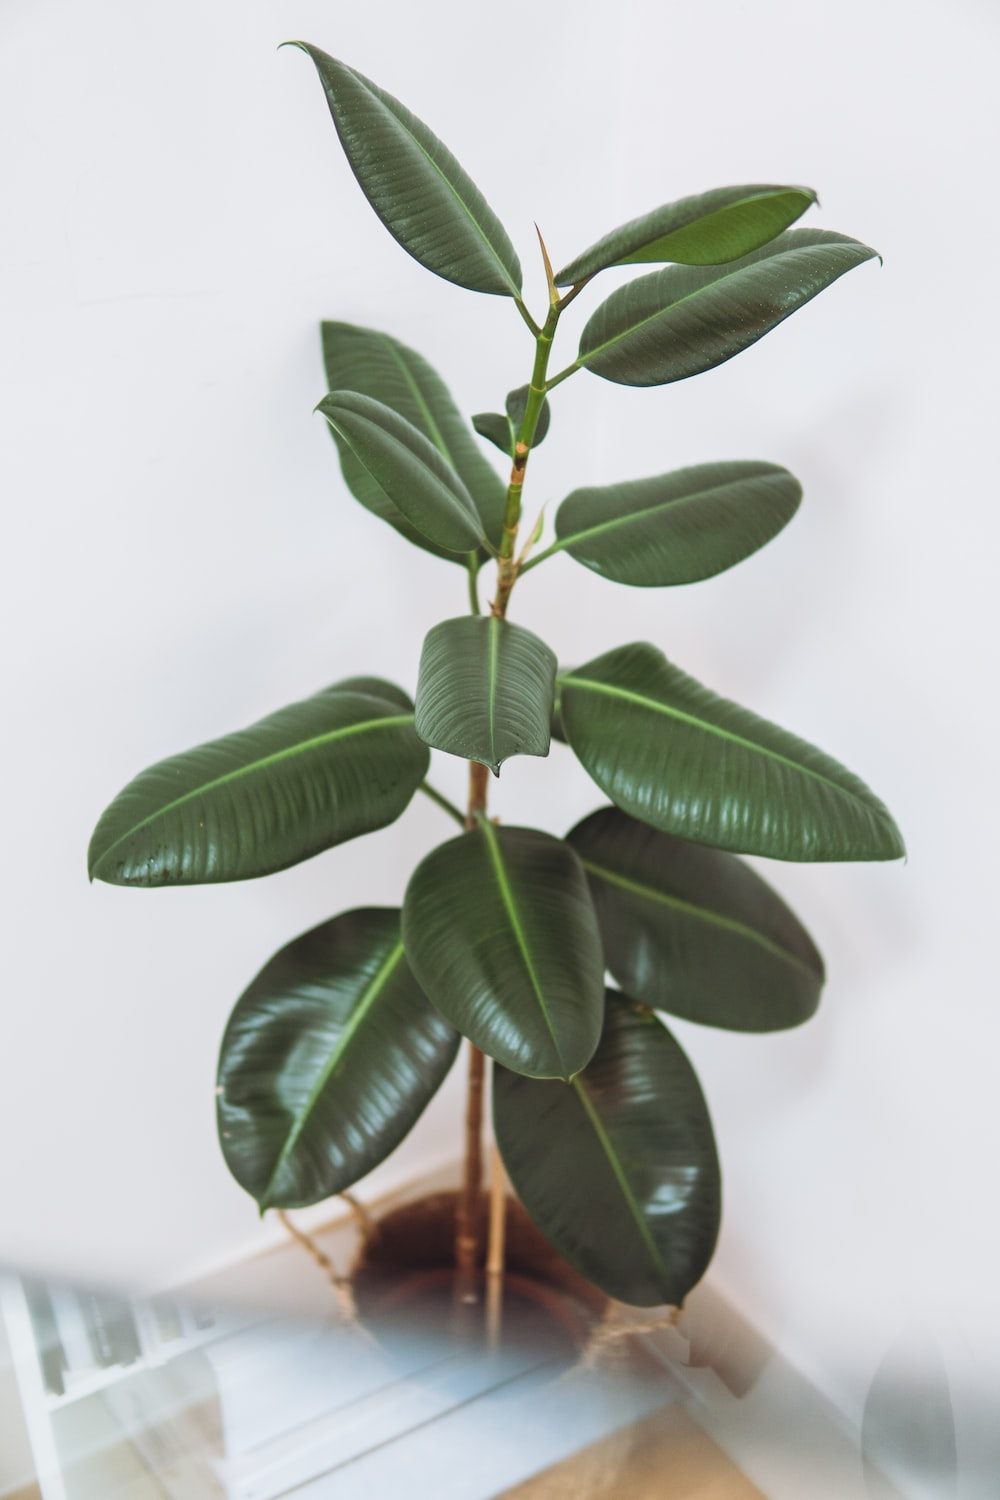 green leaves in white background